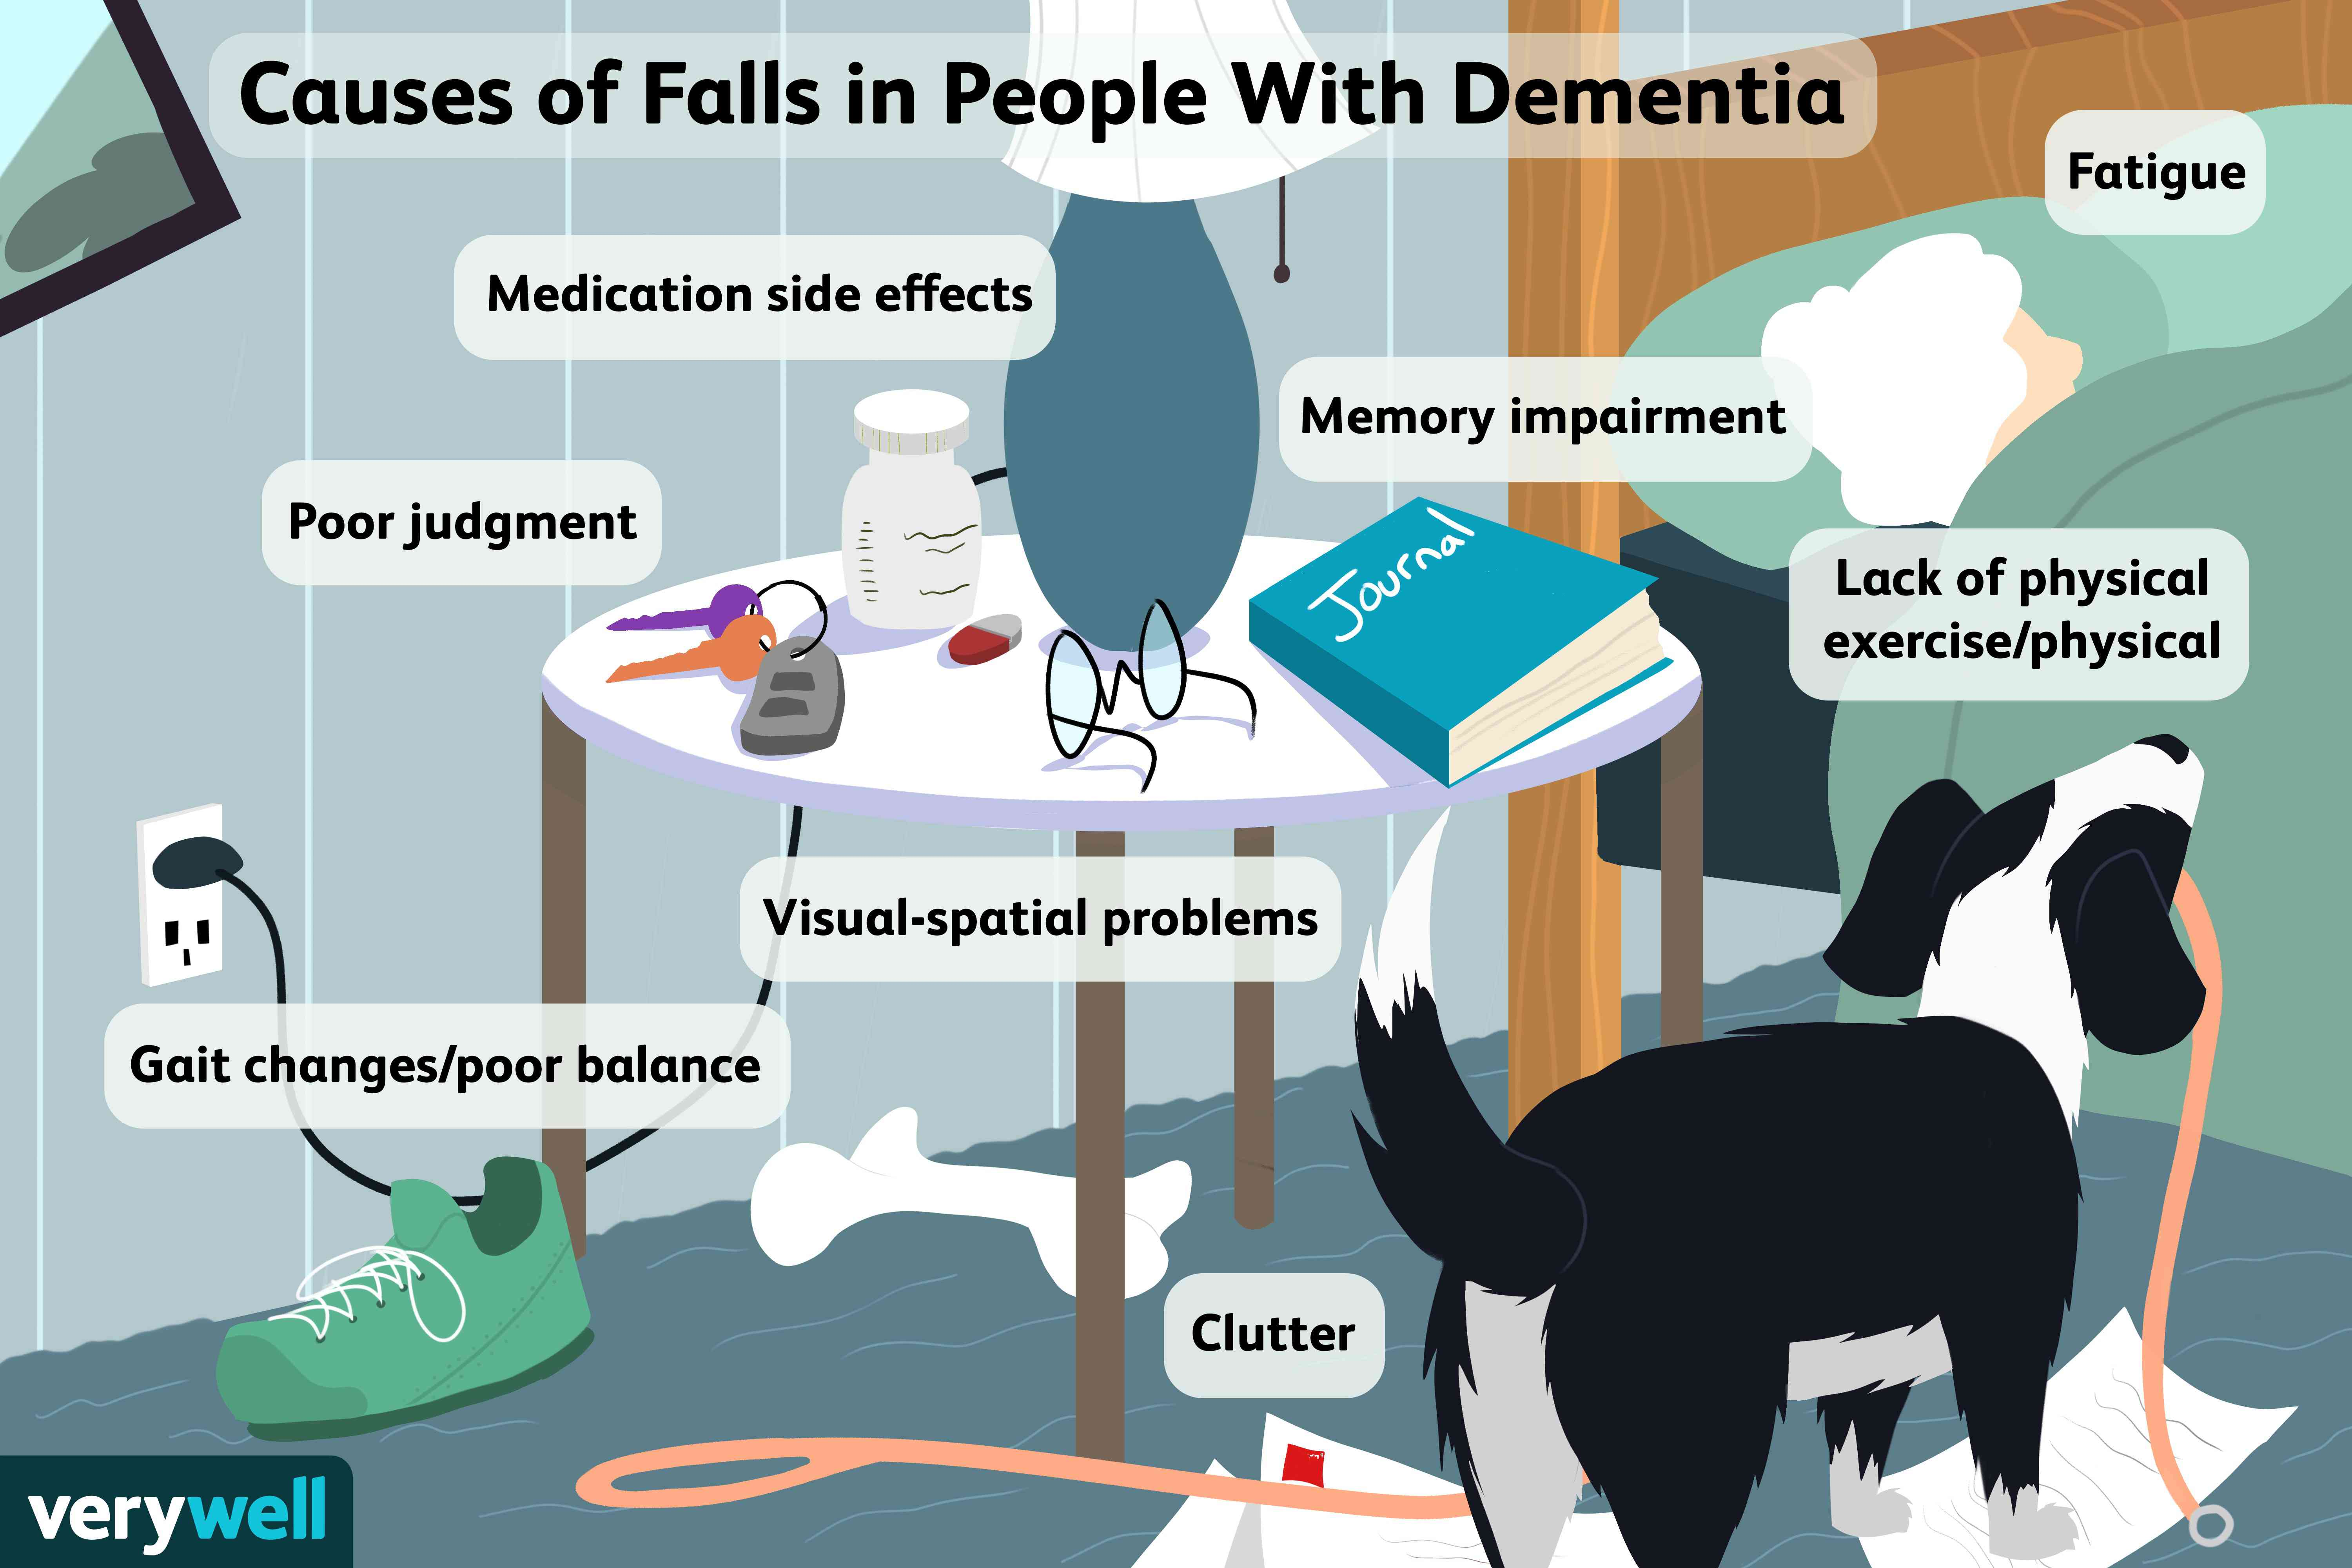 Cause of falls in people with dementia.